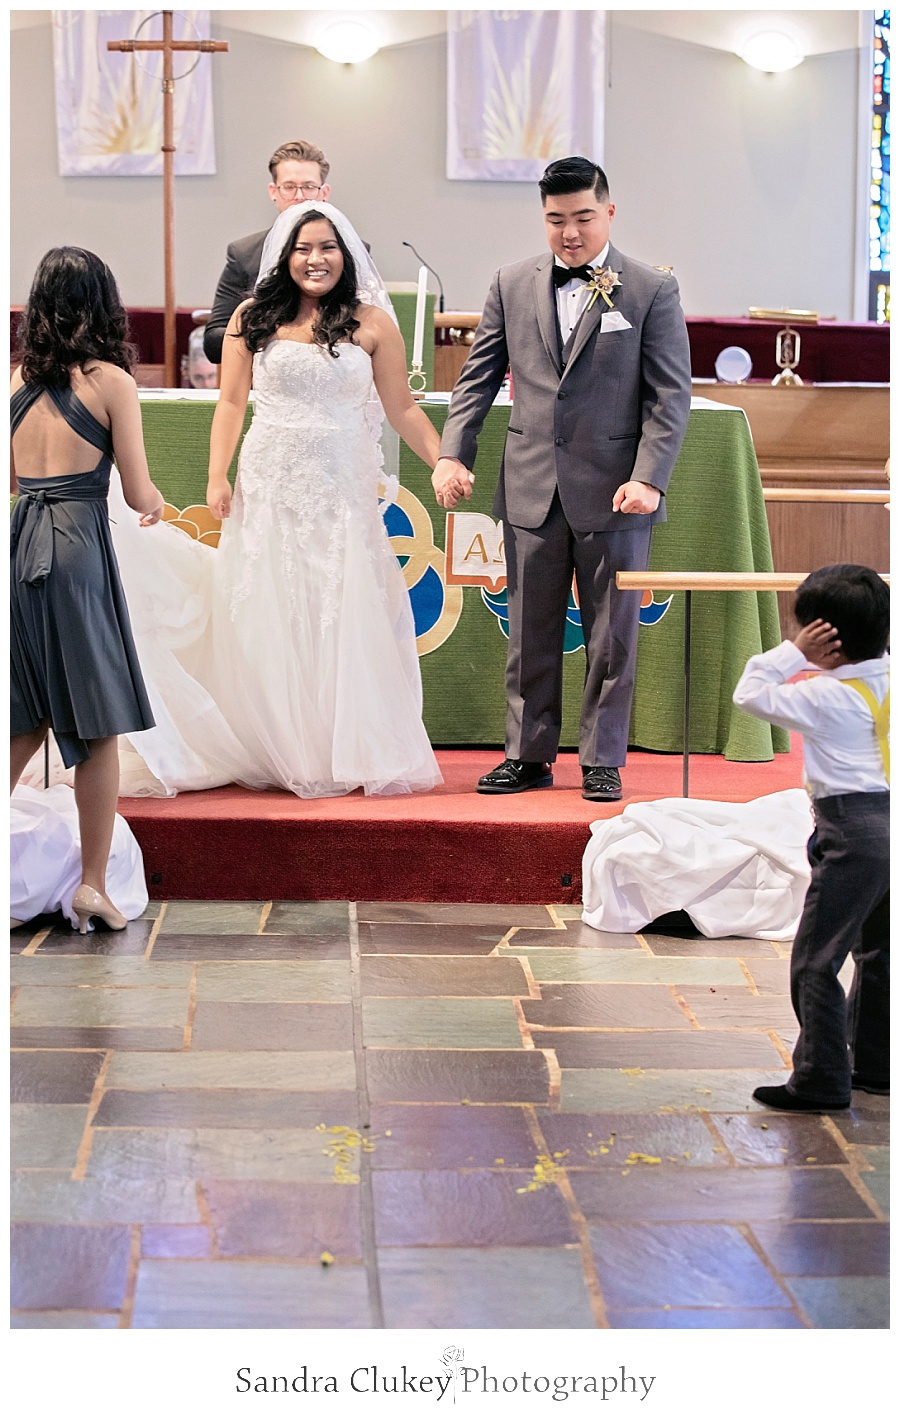 Explosive joy erupts for Mr. and Mrs.